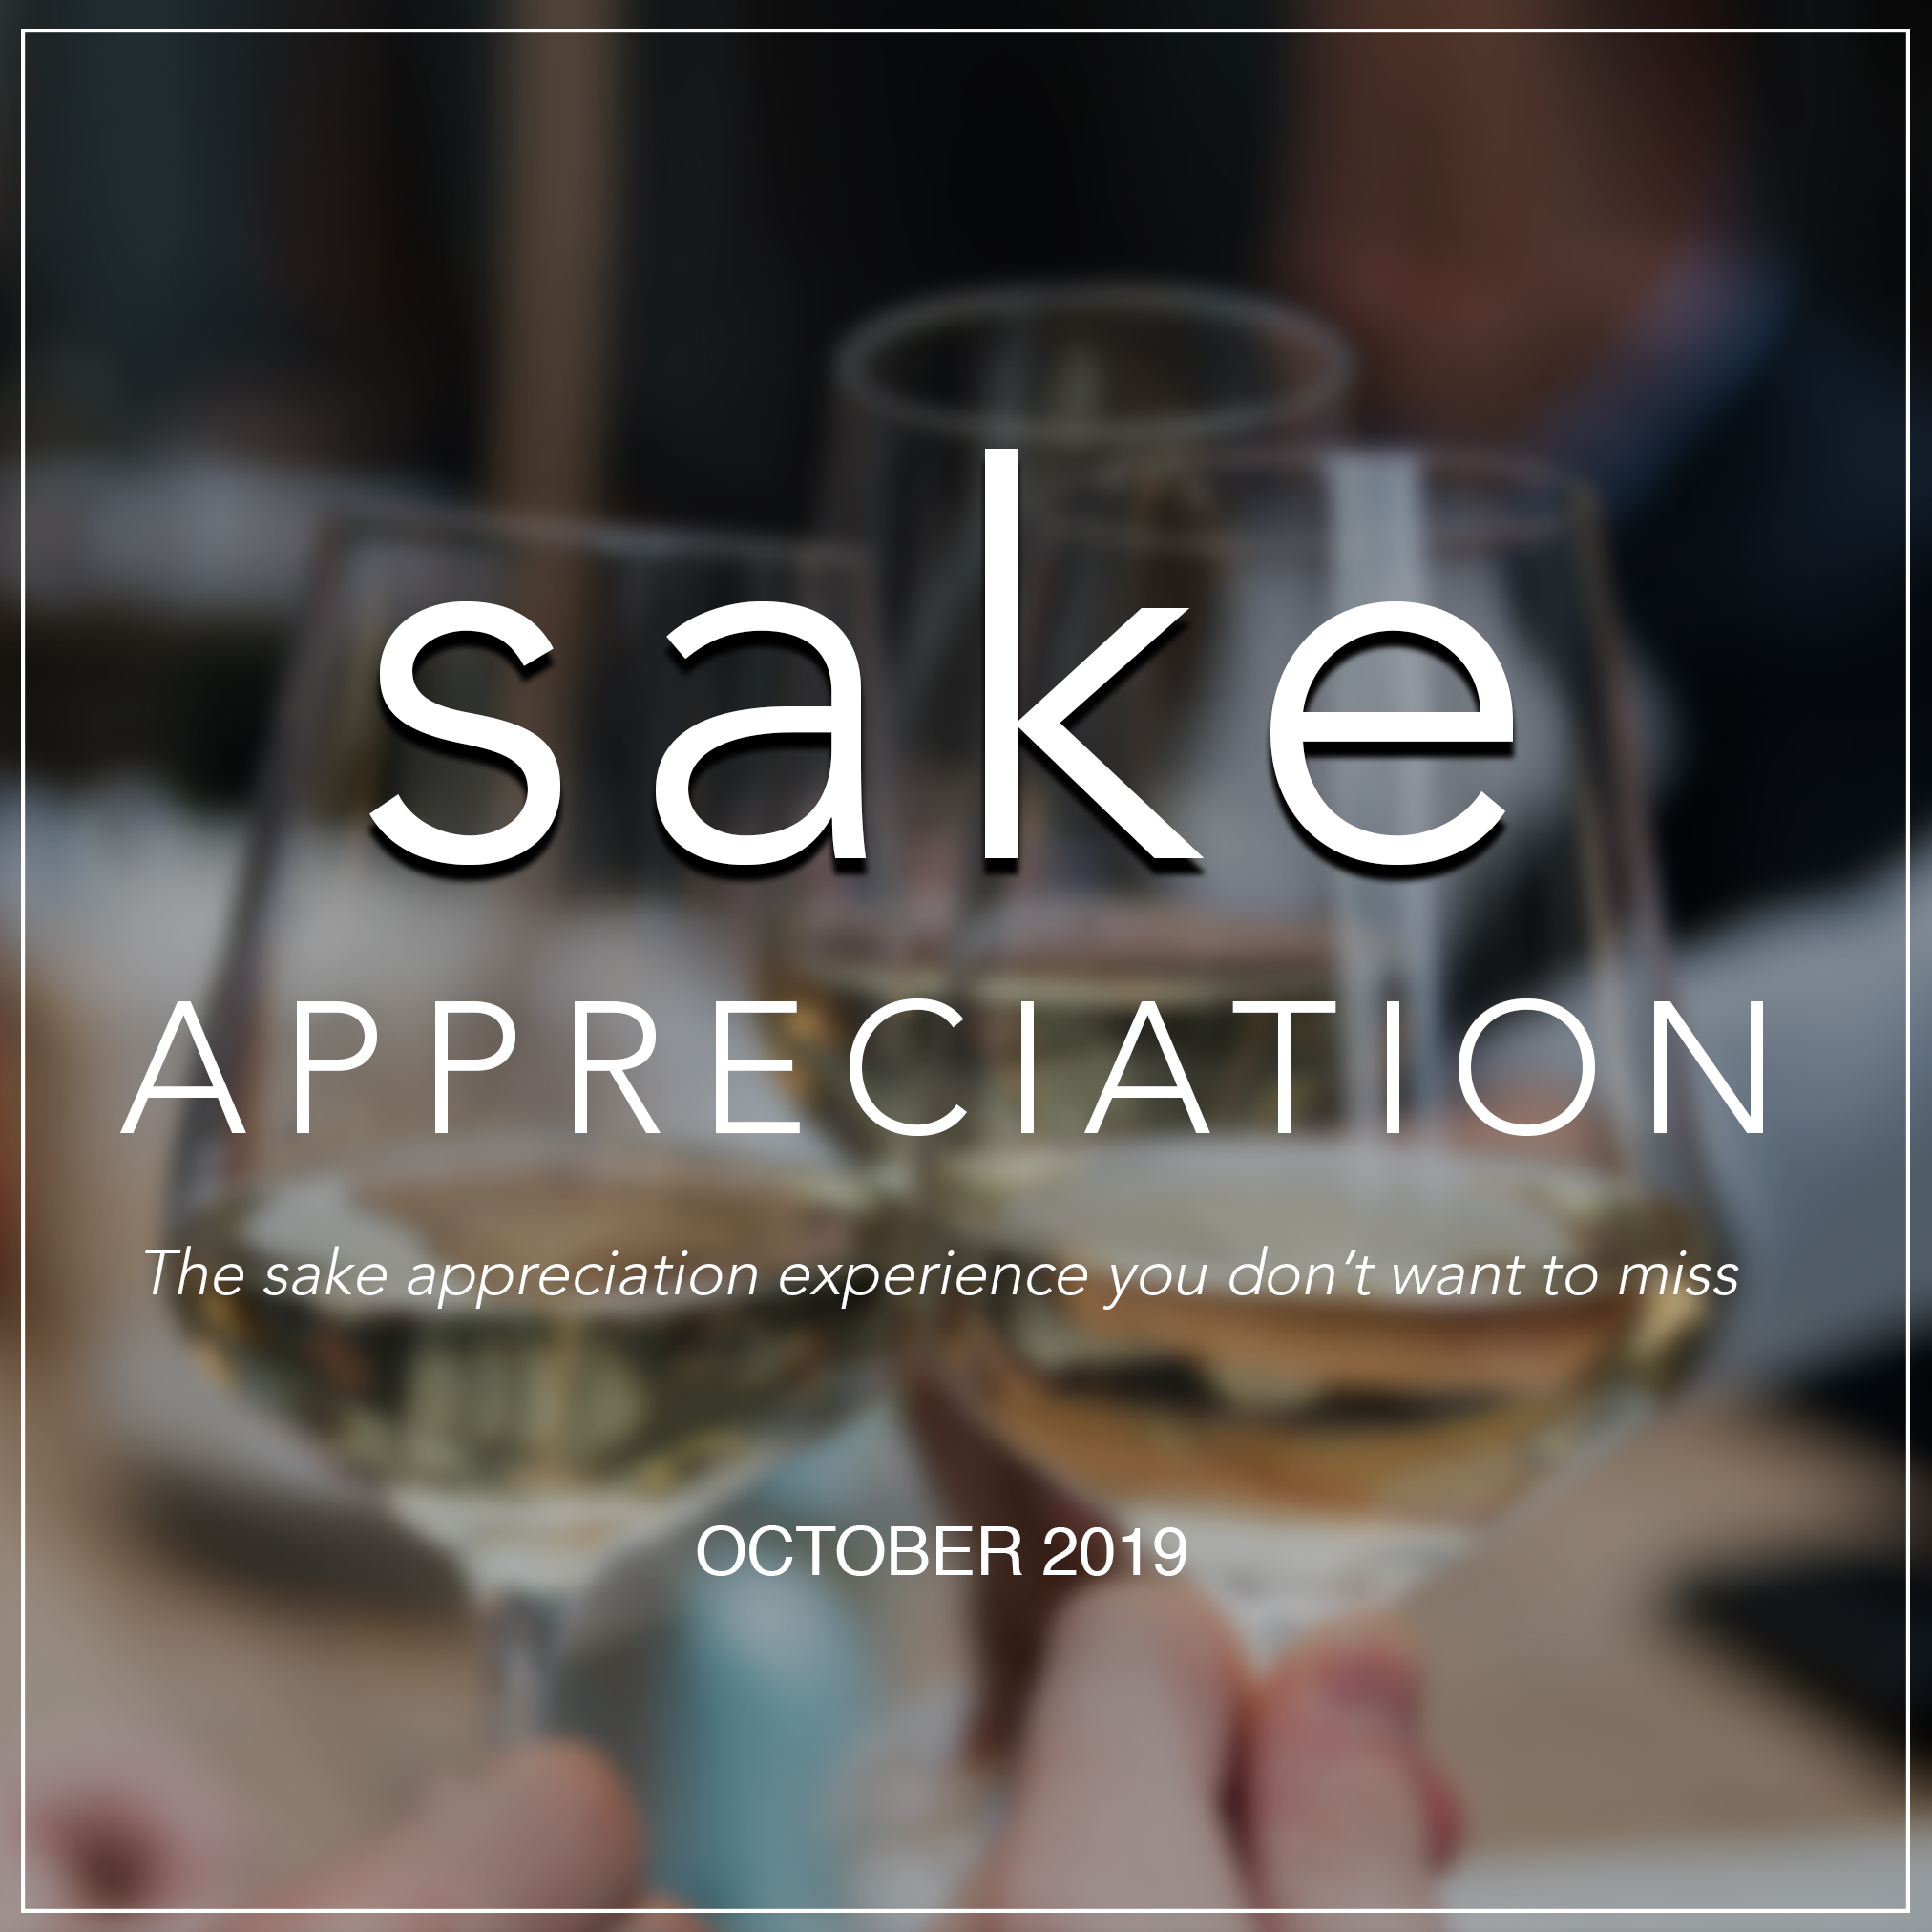 Sake Appreciation Experience!